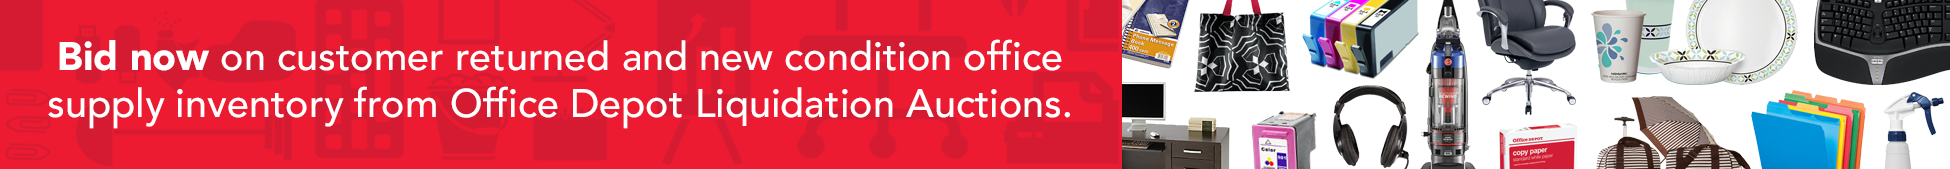 Office Depot Liquidation Auctions